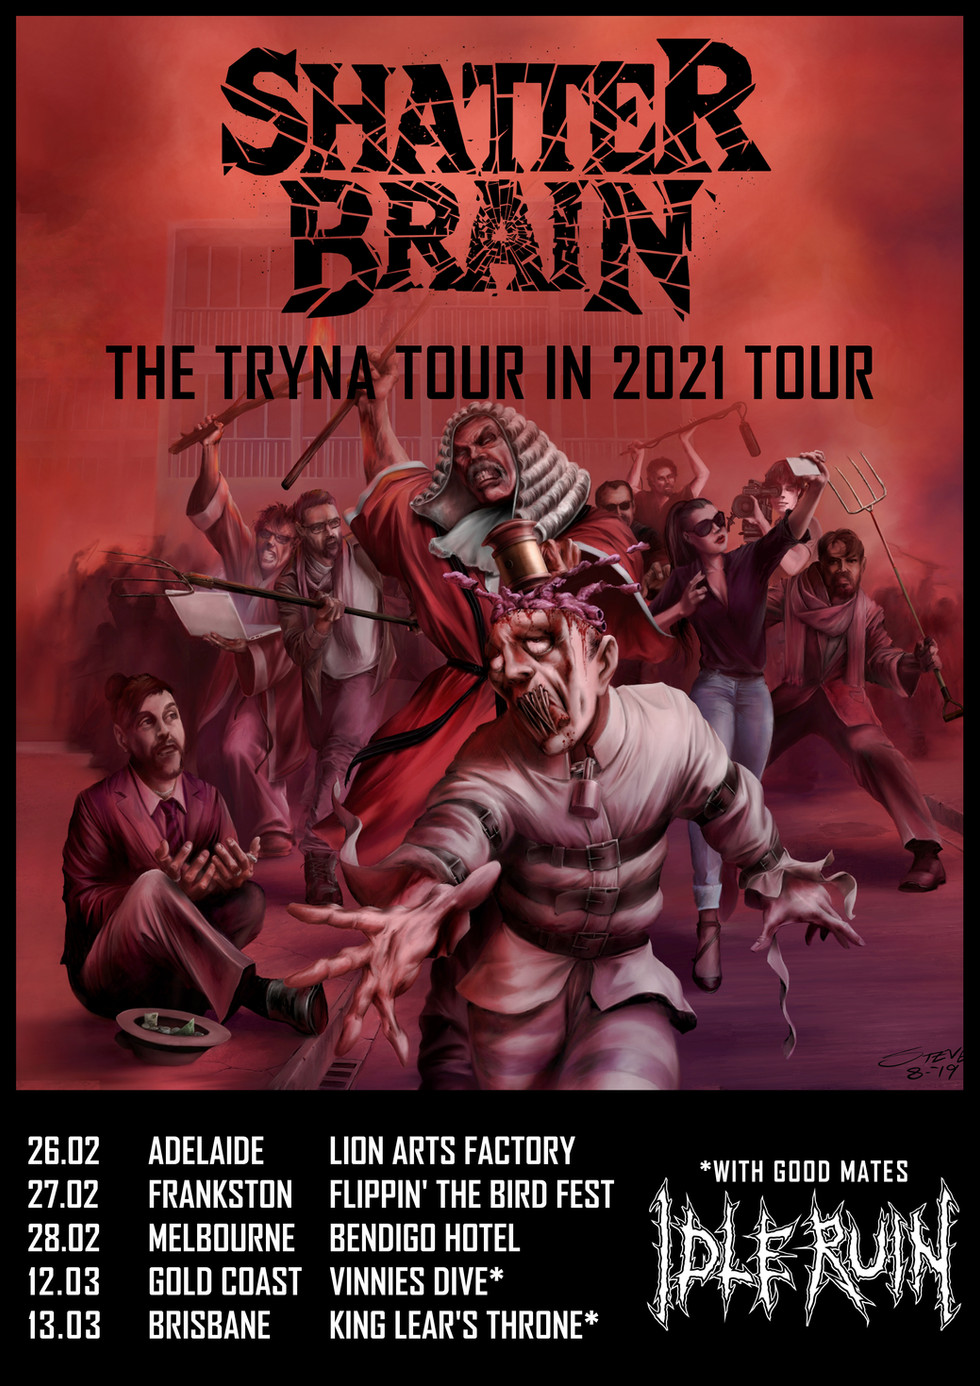 SHATTER BRAIN ARE TRYNA TOUR IN 2021!